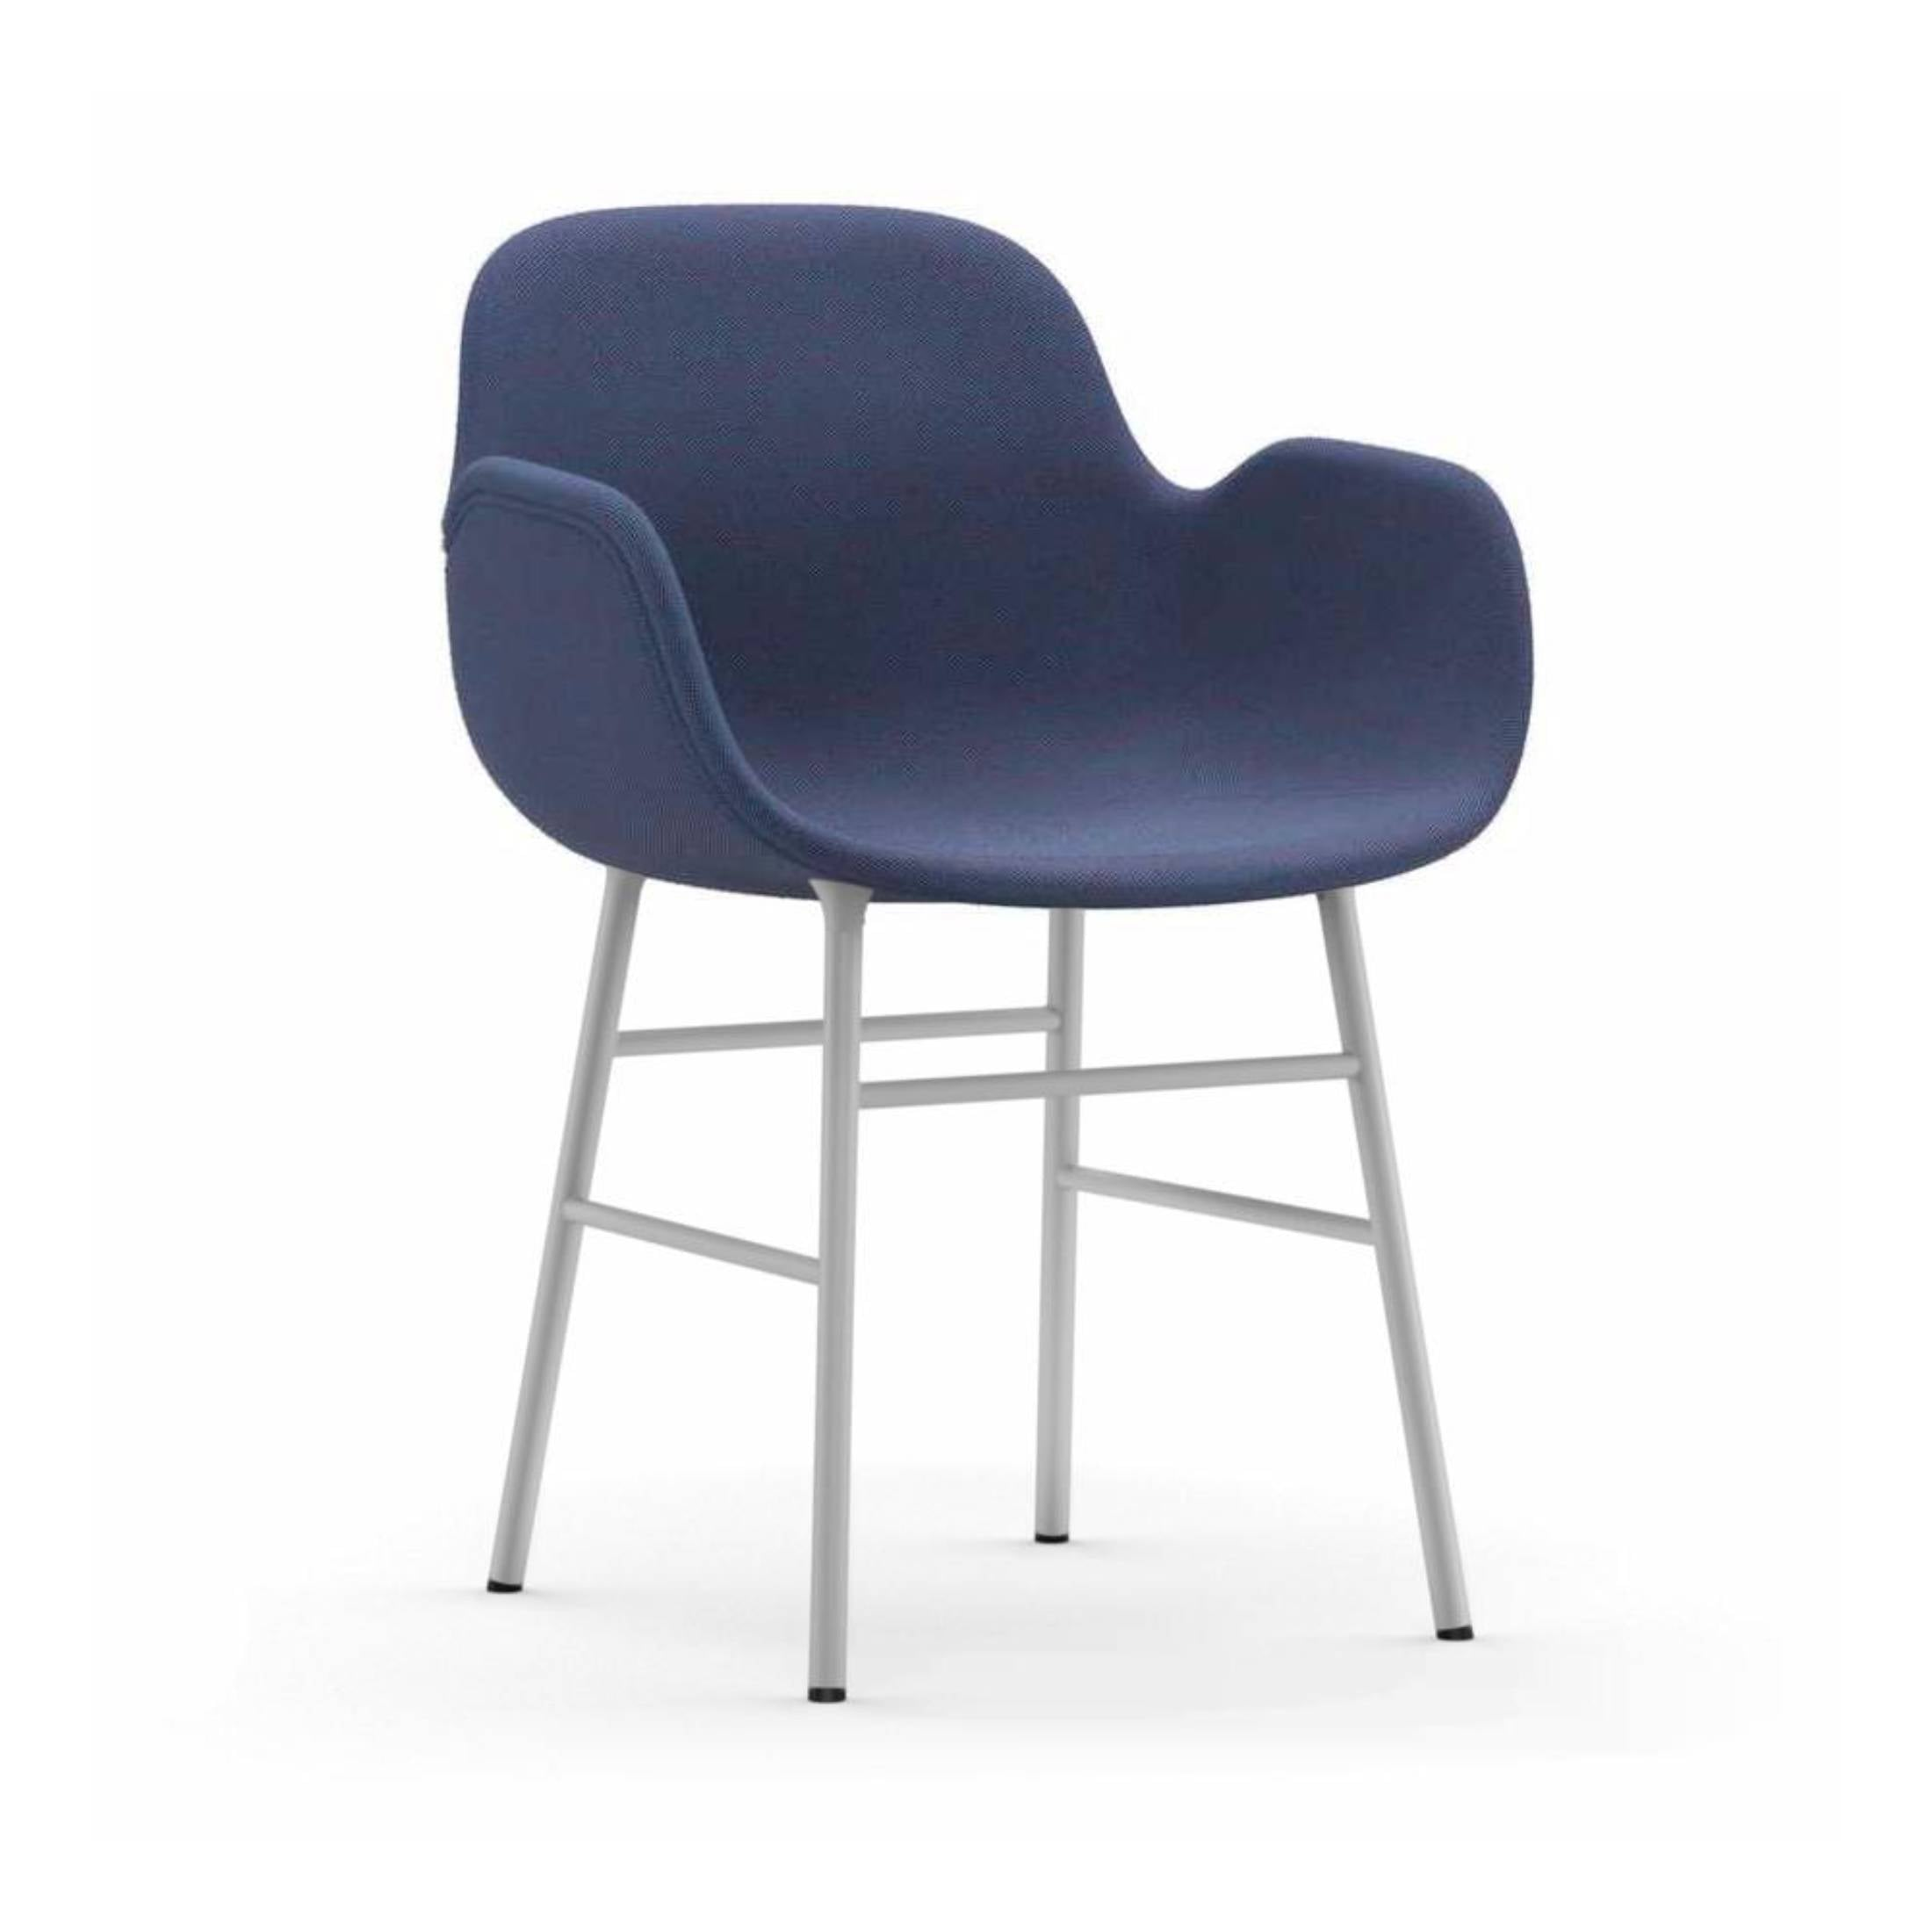 Form Armchair: Steel Legs Upholstered Shell